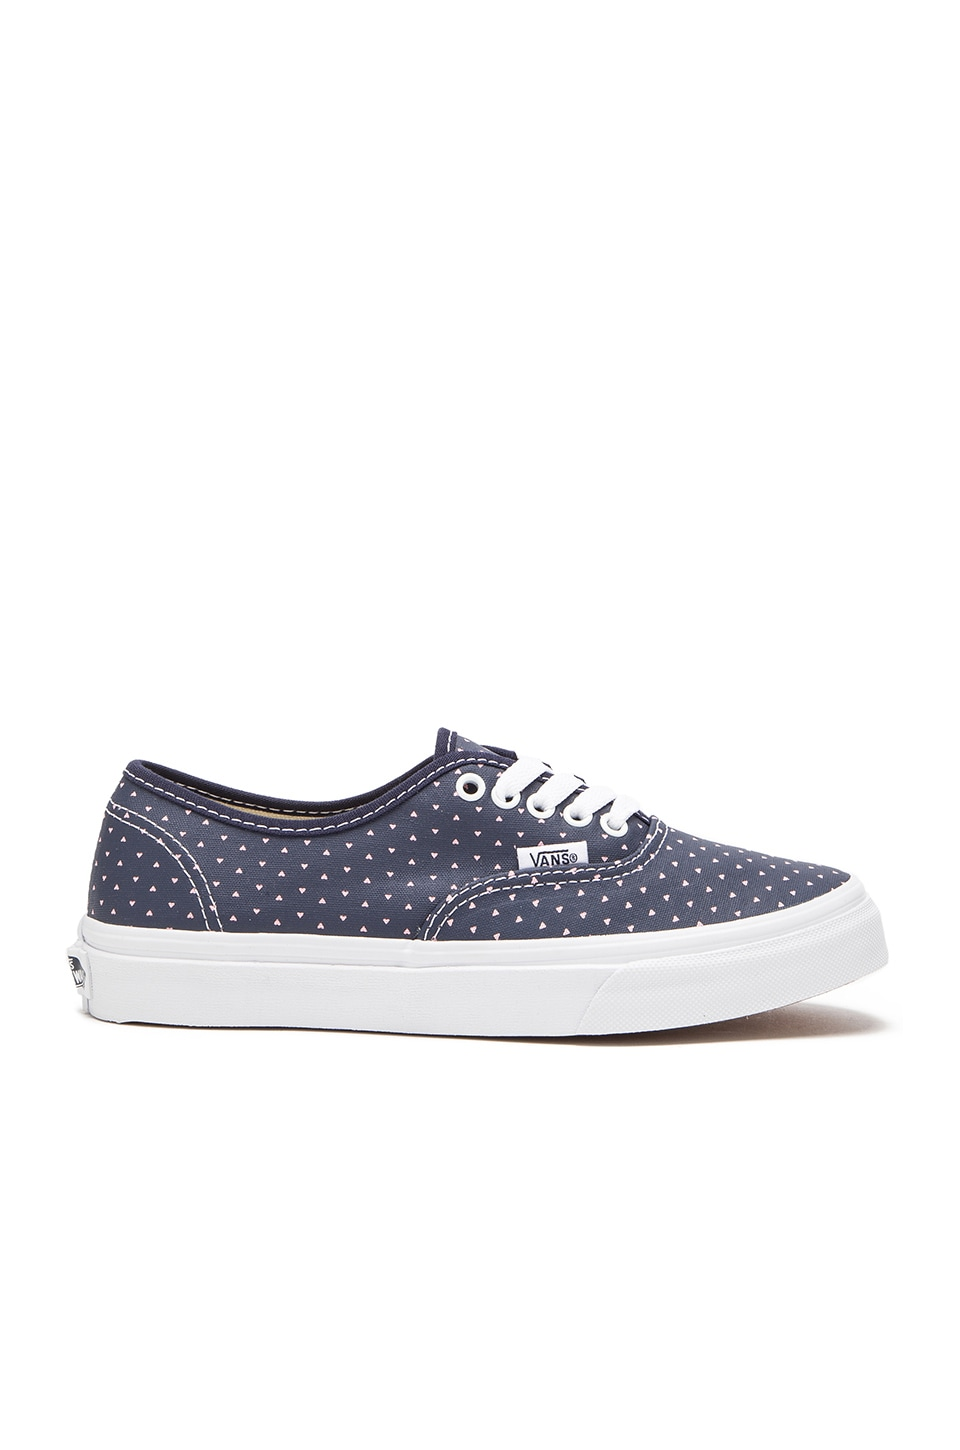 Vans Authentic Slim Micro Hearts Sneaker in Dress Blue & True White